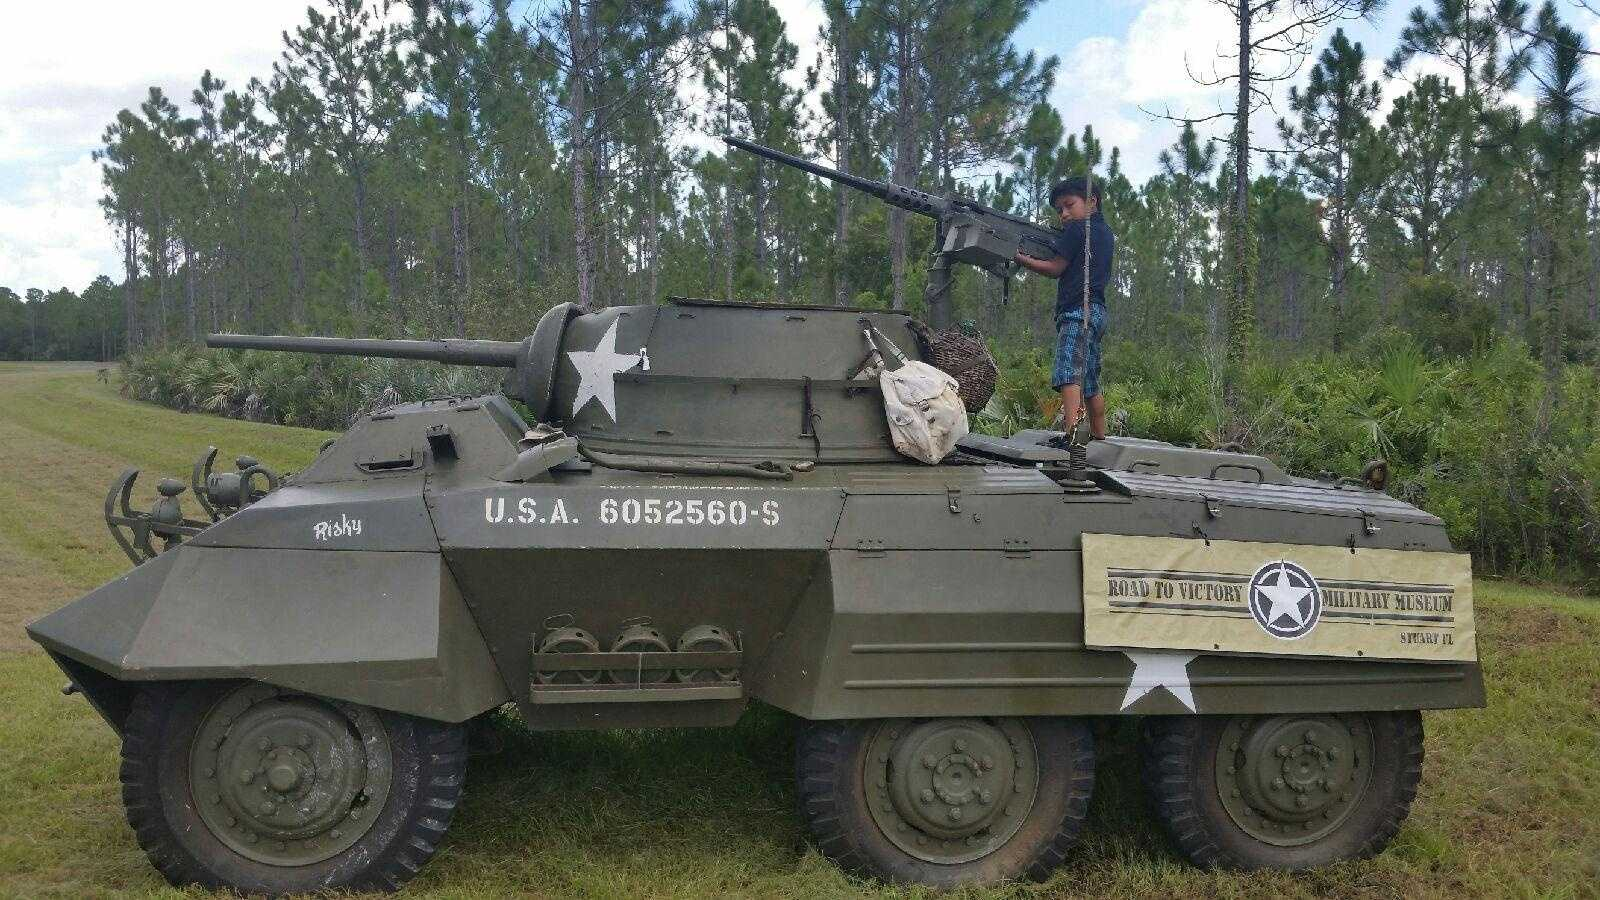 A WPBF viewer took this picture Saturday and the gun was still on the tank.